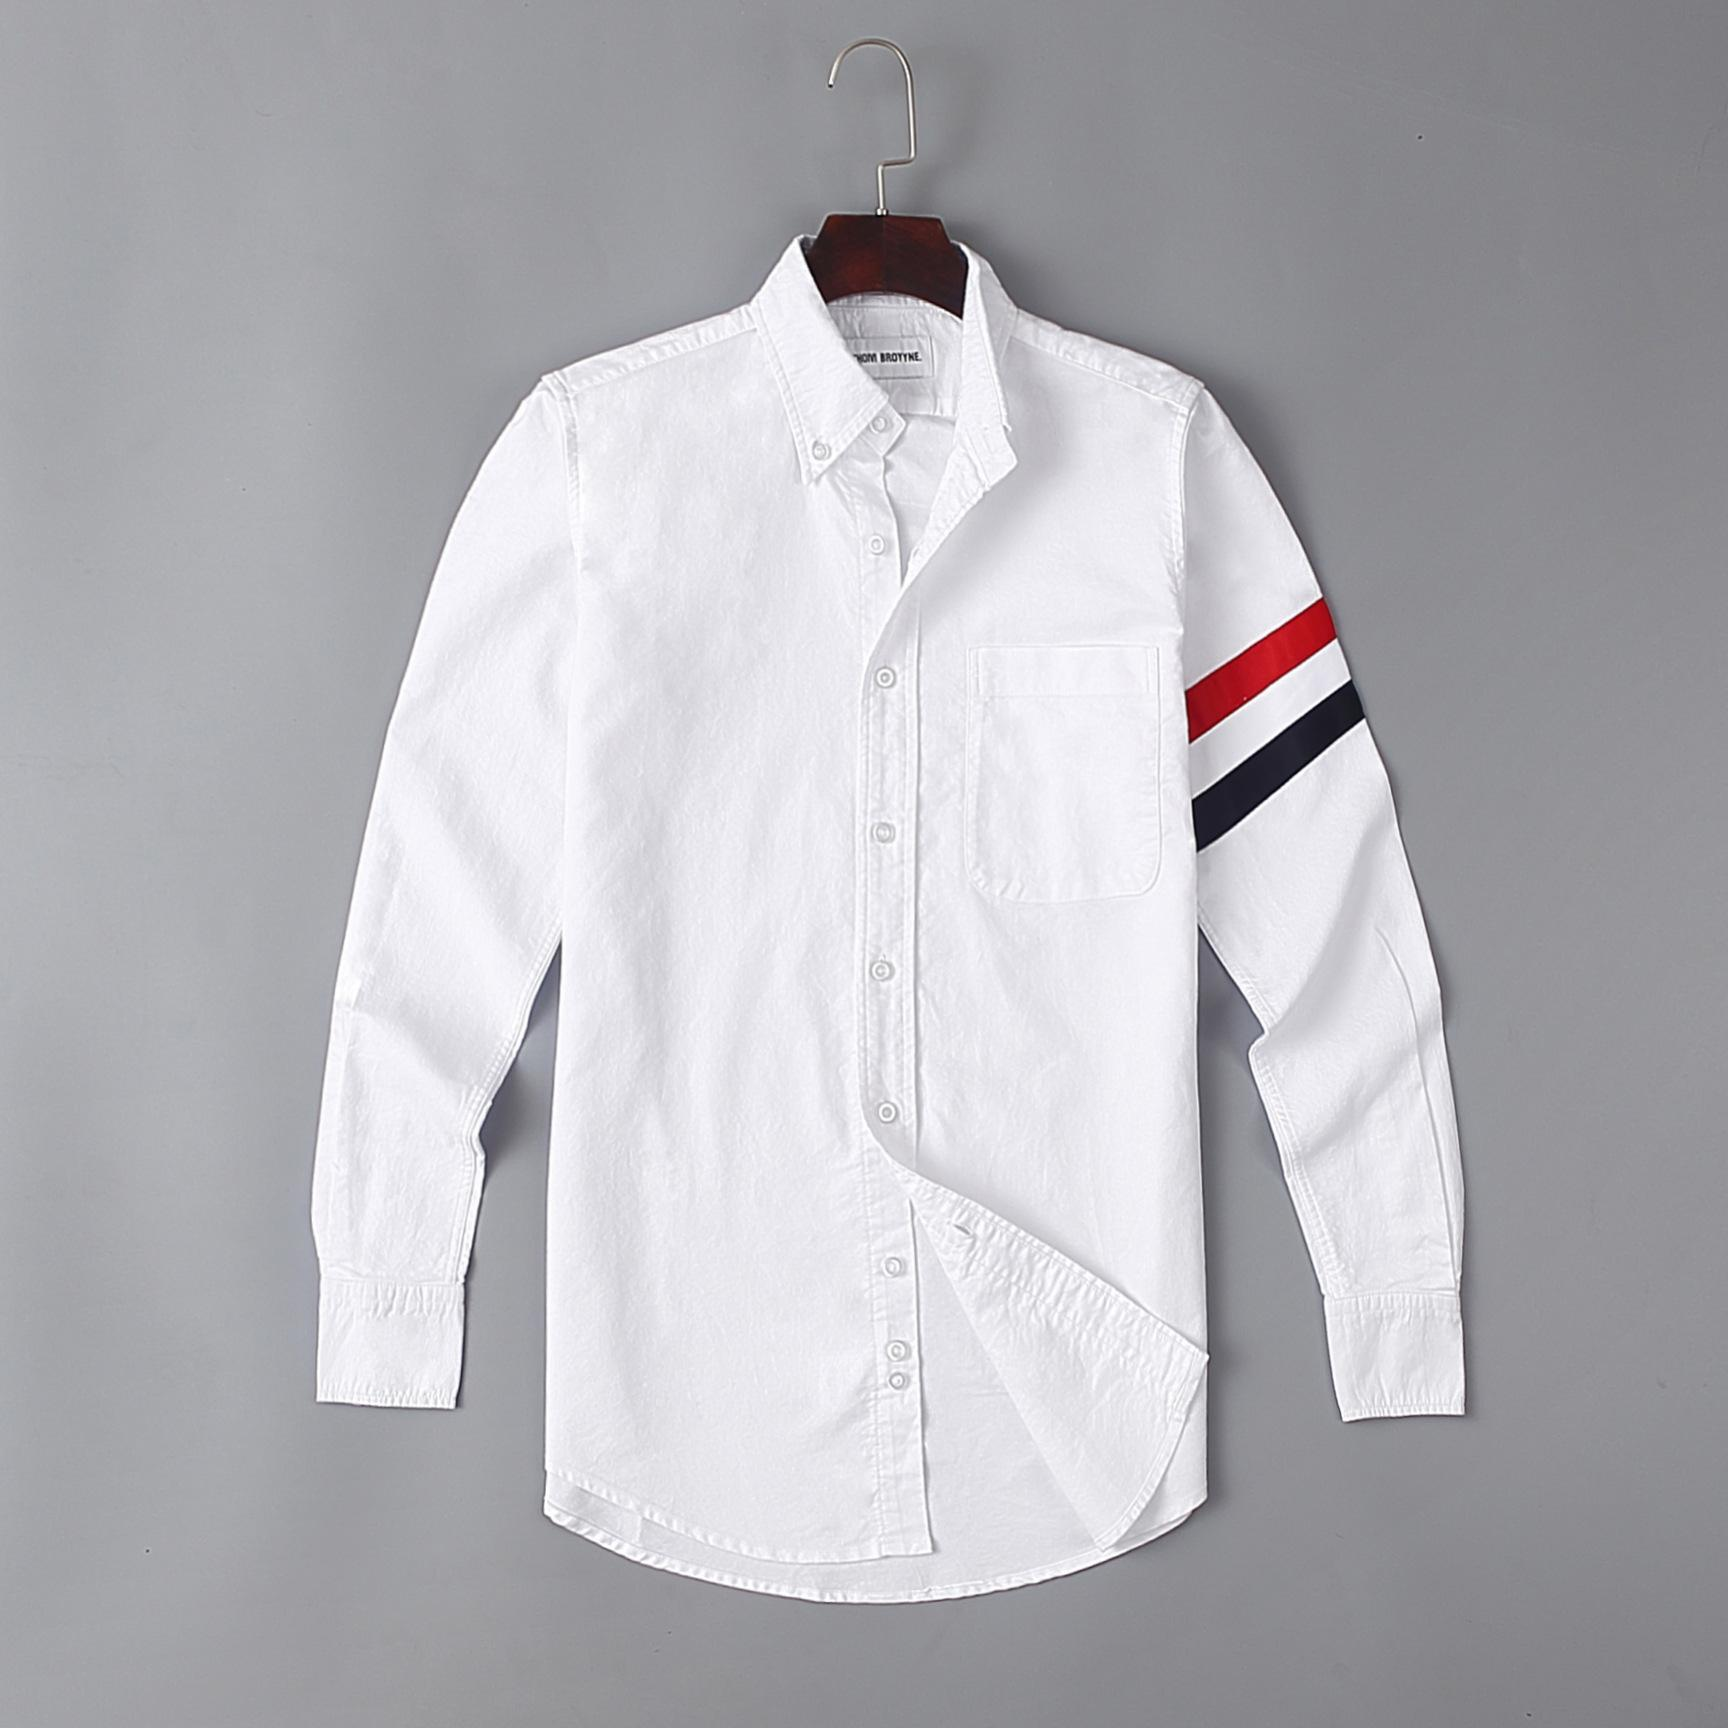 Mode homme THOM TB Shirt t-shirts homme design BROWNE SUMMER T-shirts manches longues design homme homme taille 0-3